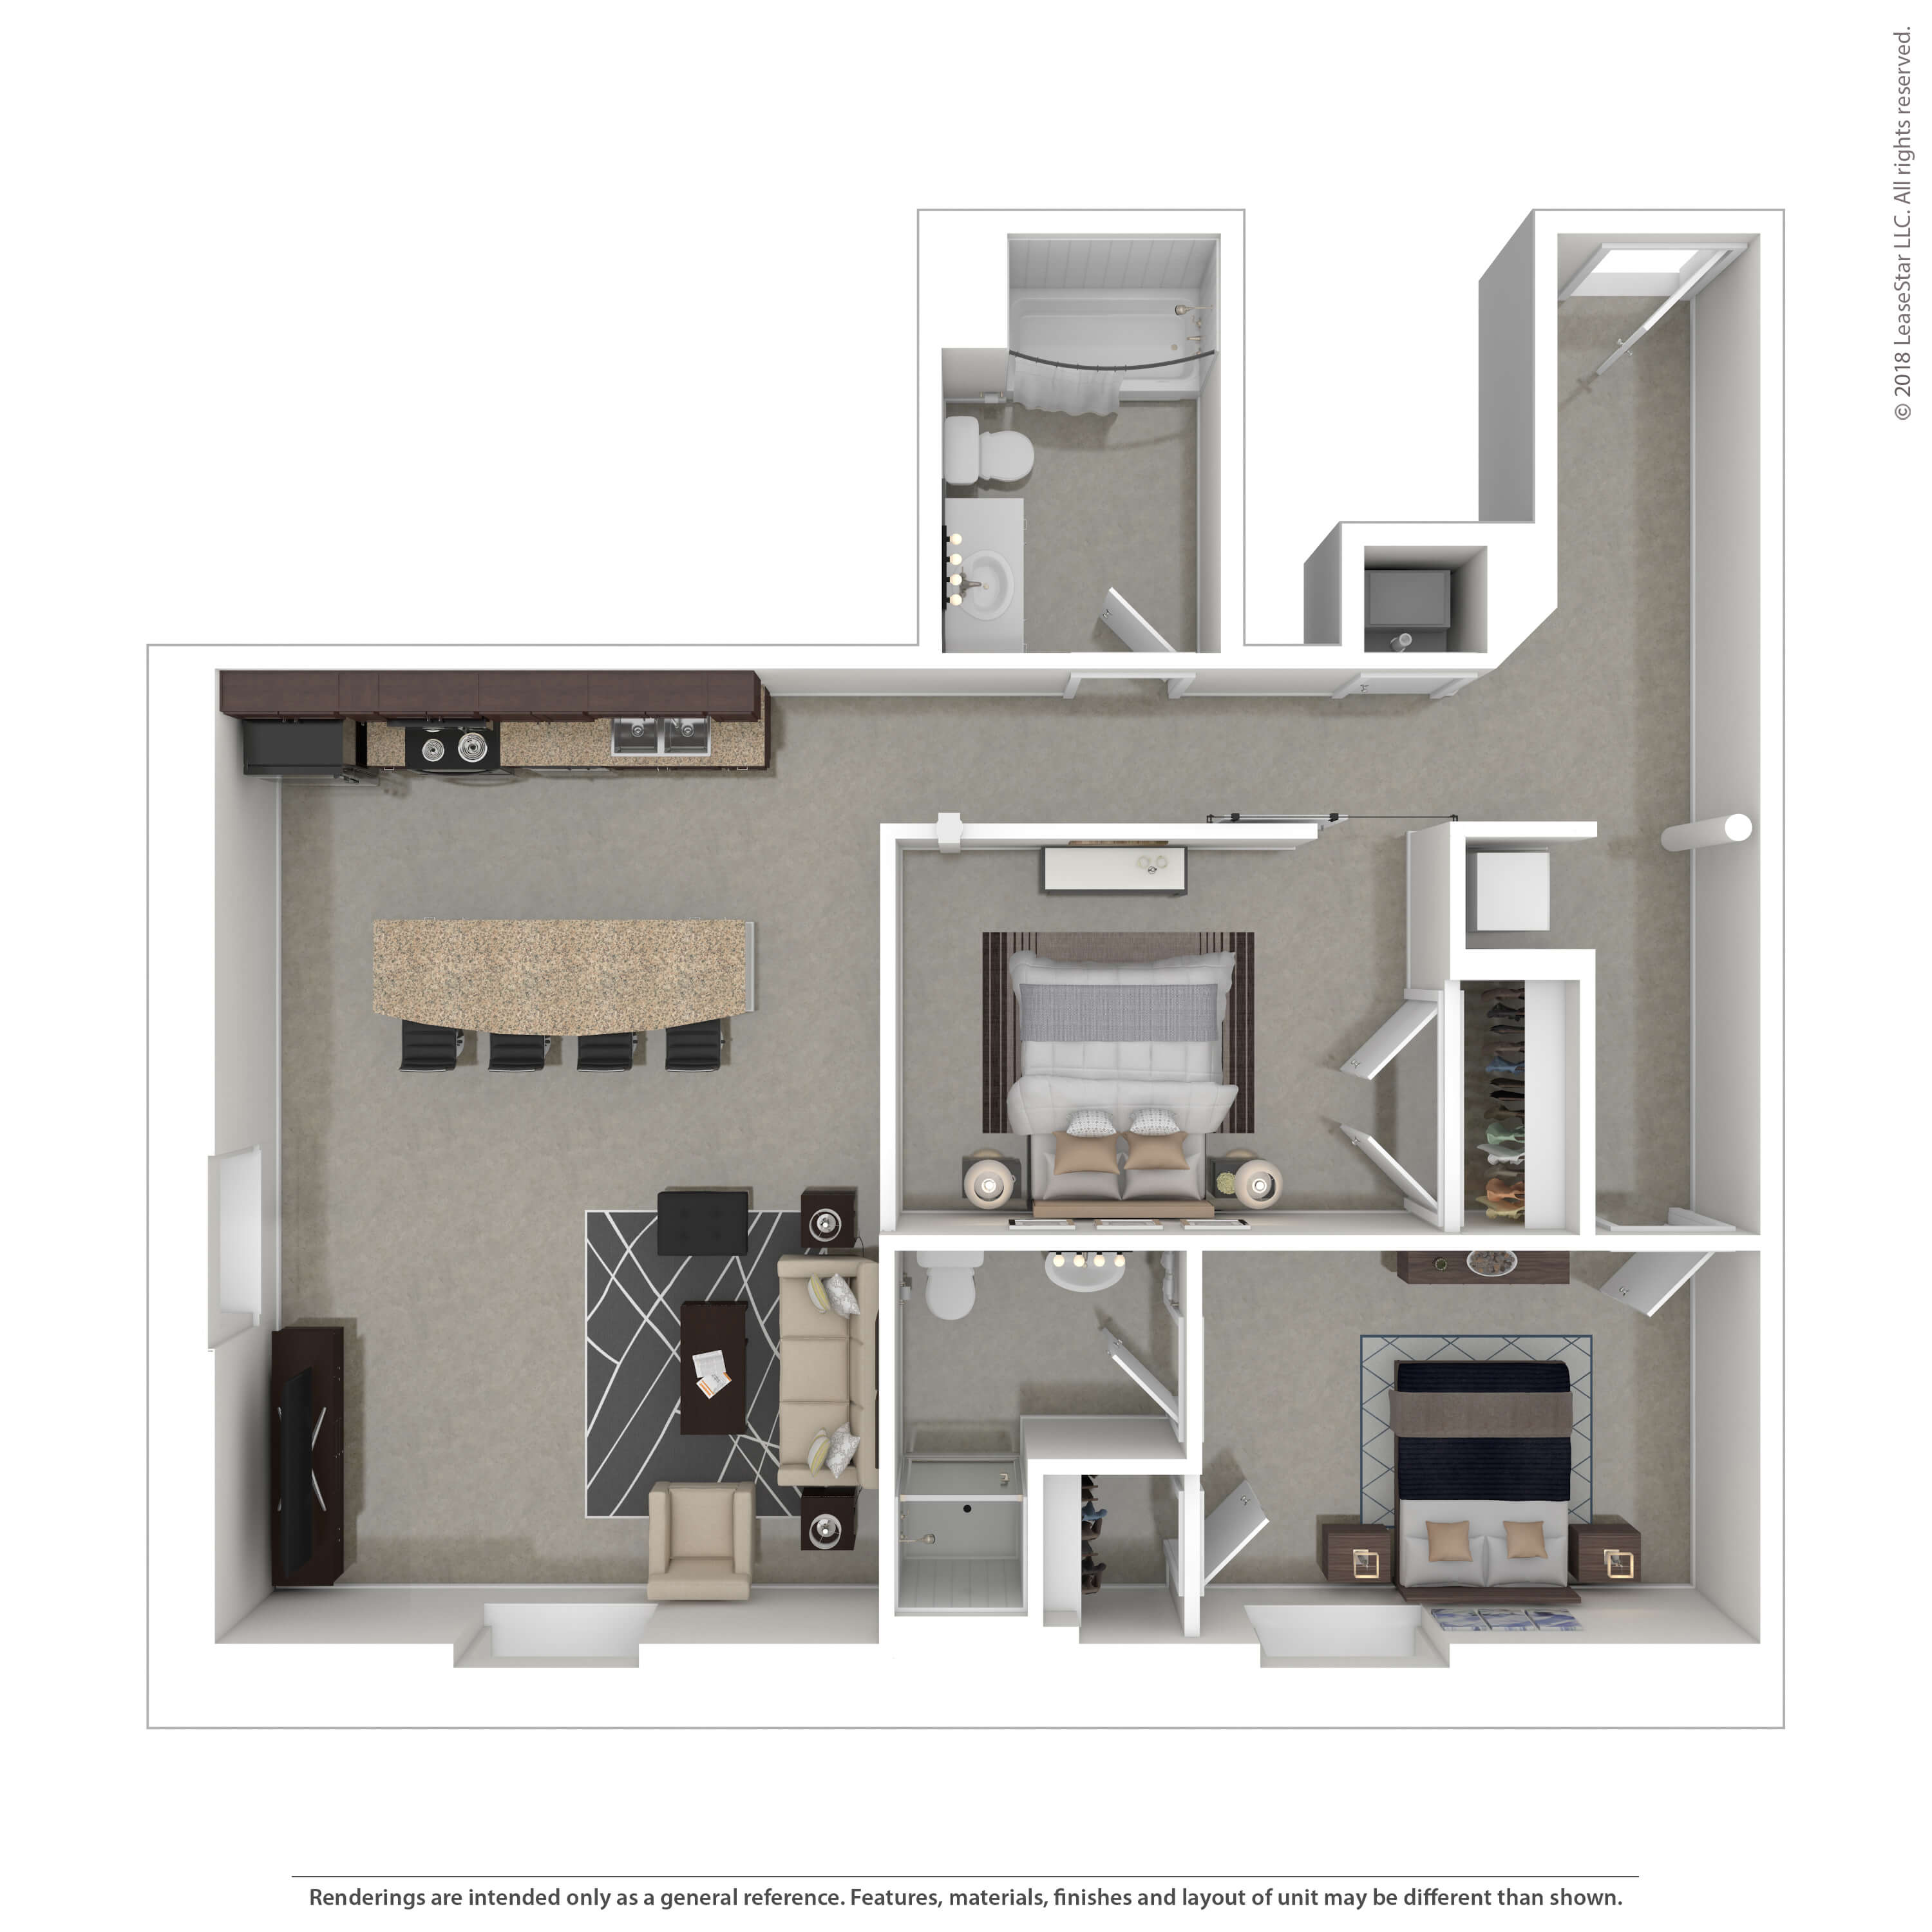 Two Bedrooms - $989